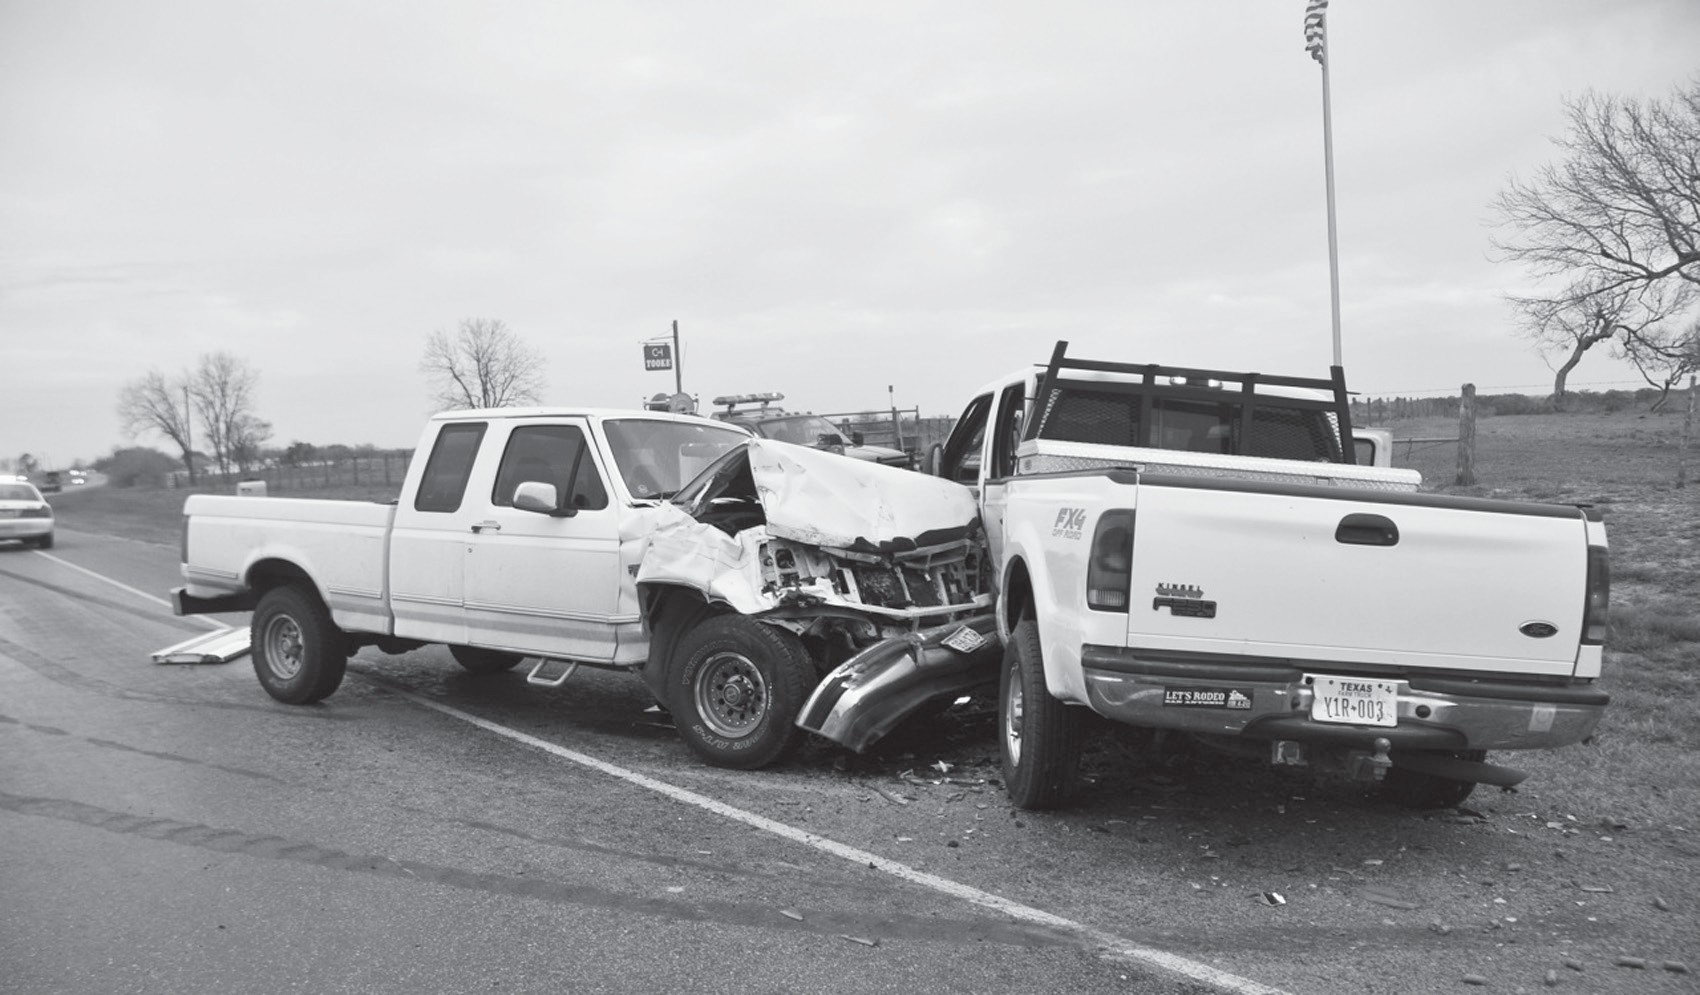 A wreck involving two pickup trucks occurred last Wednesday, February 15. Robert L. Tooke was eastbound on the improved shoulder on FM 476. The driver of the other truck was Rita Gallegos who was also traveling east. Tooke failed to yield right of way and turned left in front of Gallegos, striking the left side. Gallegos was taken to South Texas Regional Medical Center by EMS. Tooke was treated at the scene.